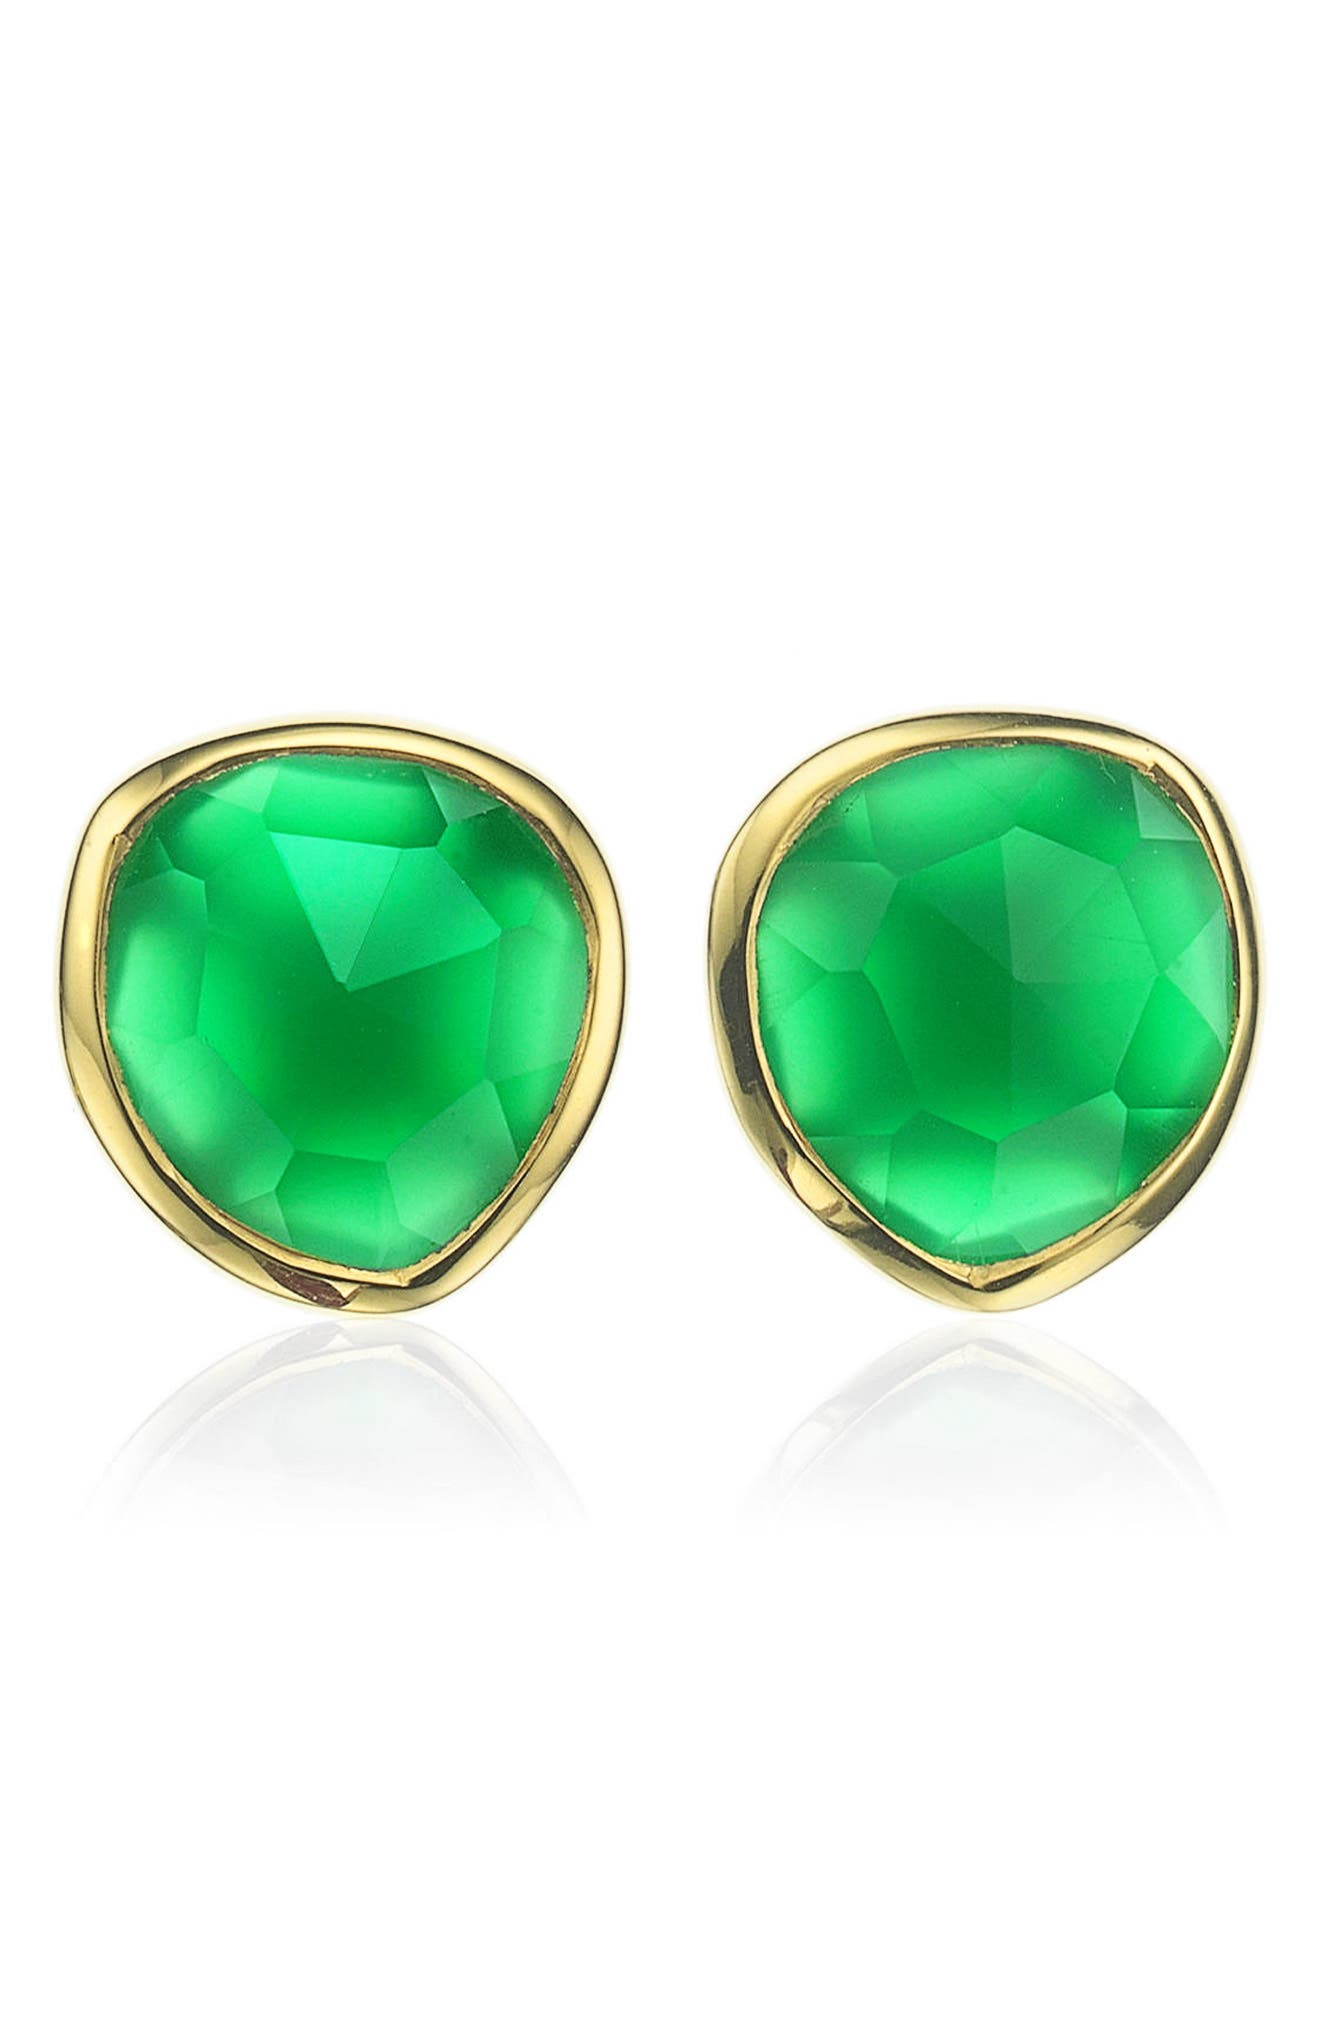 MONICA VINADER Siren Semiprecious Stone Stud Earrings